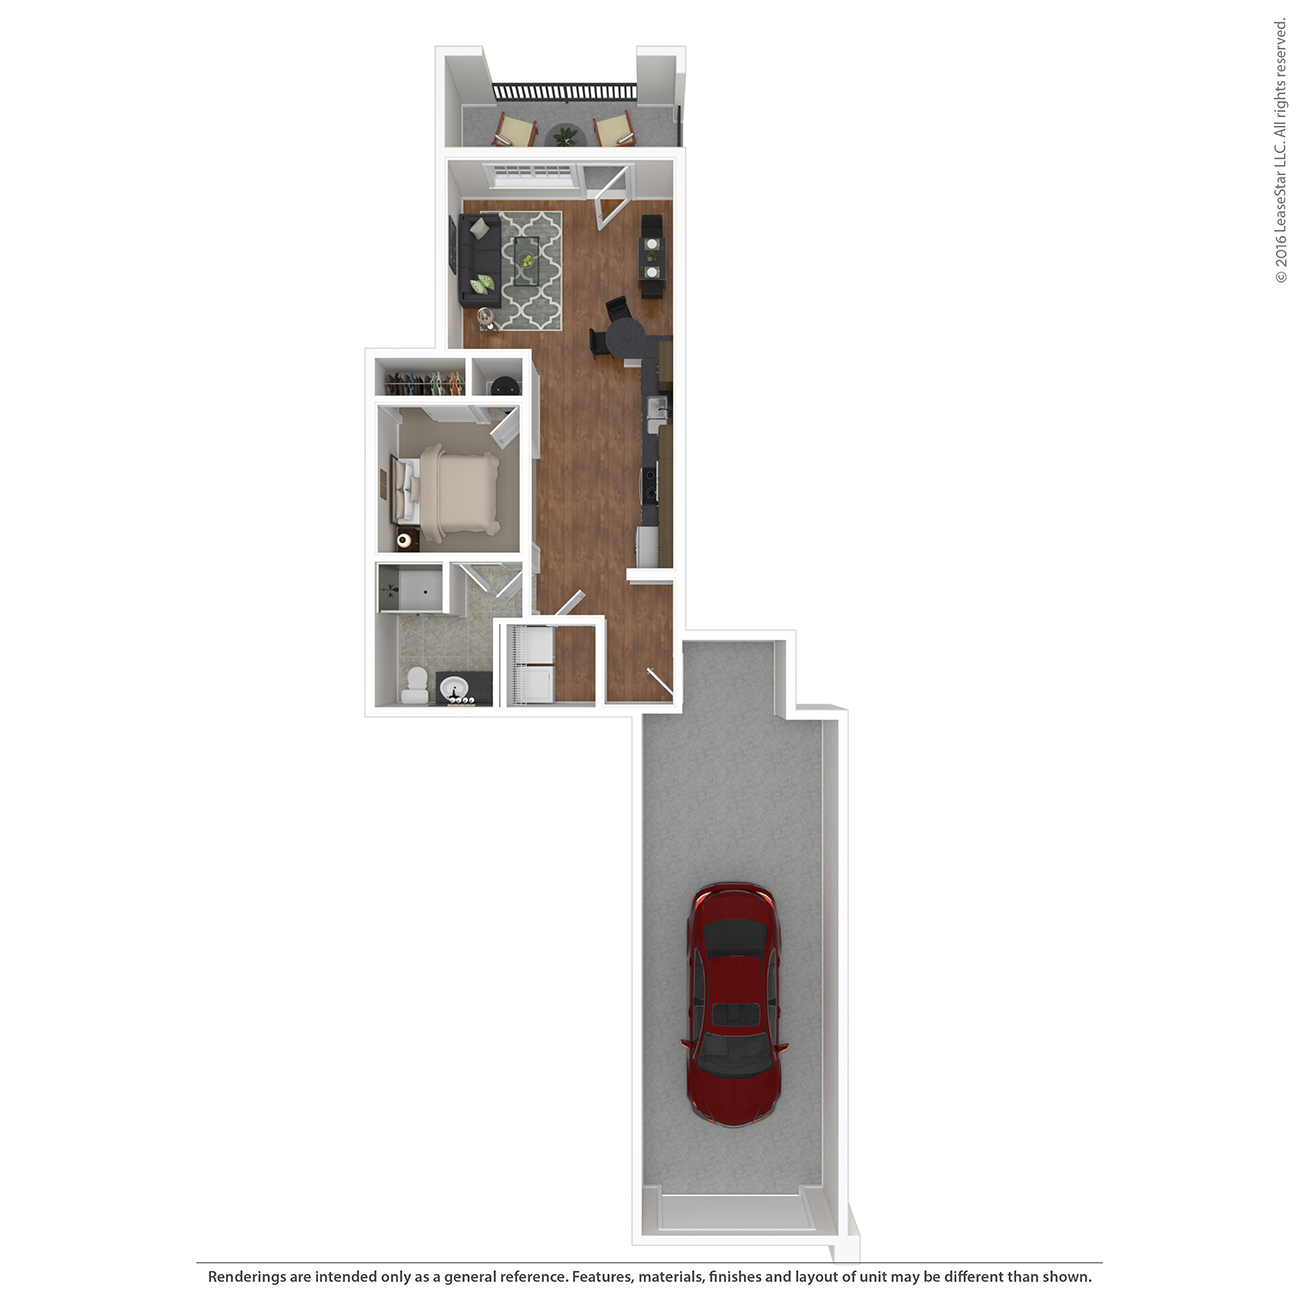 Savannah West - Floorplan - A1